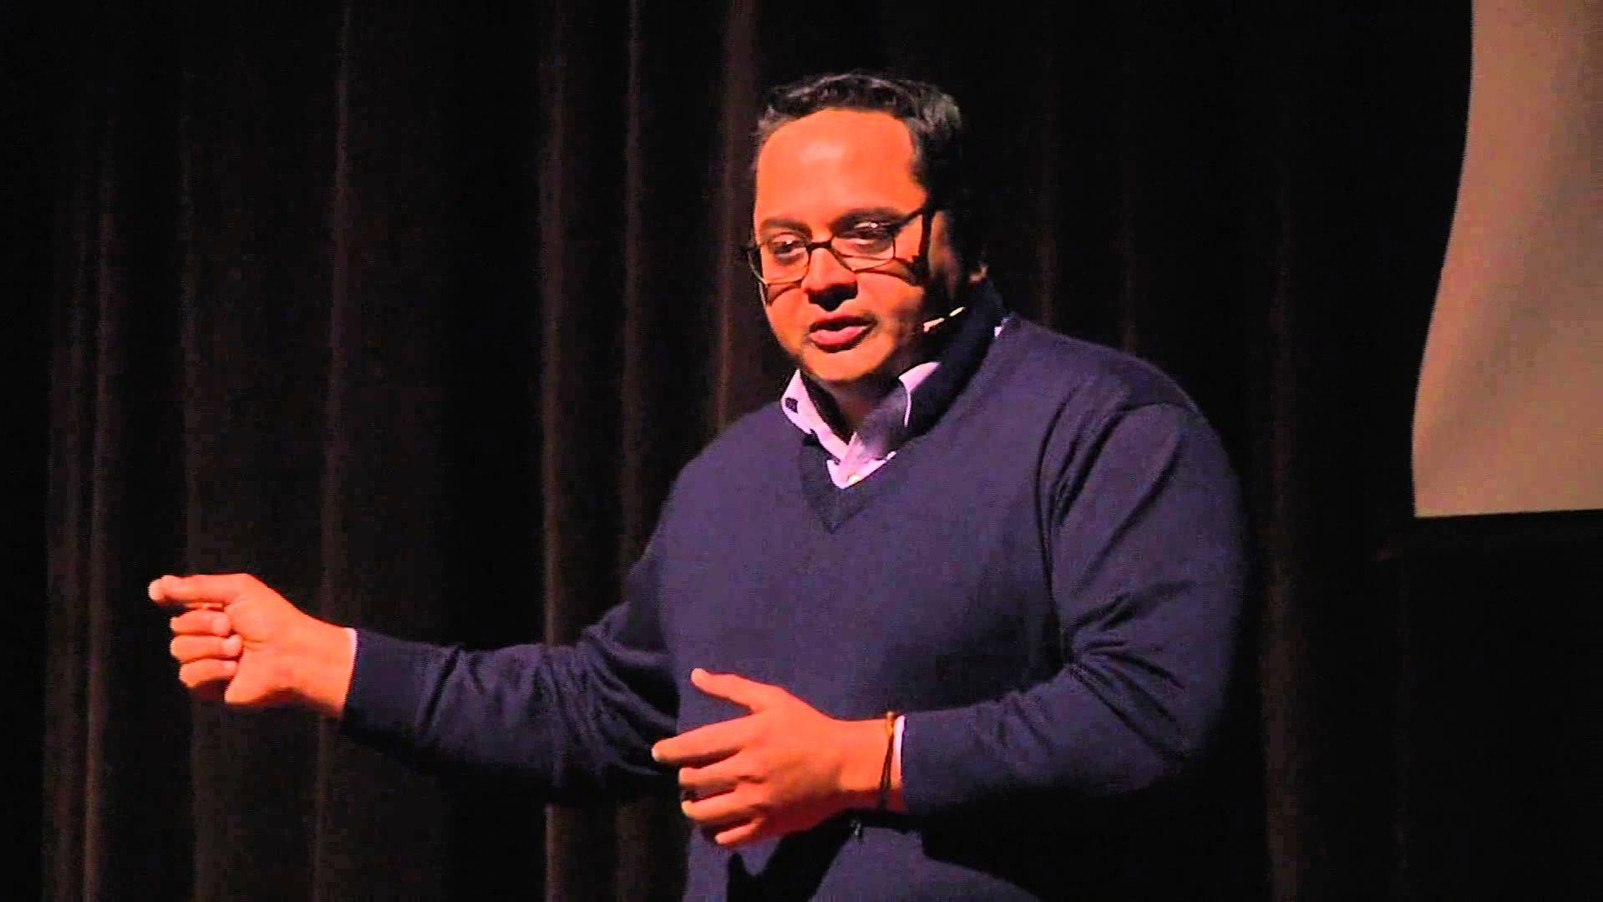 TEDx talk on Mystery and Certainty